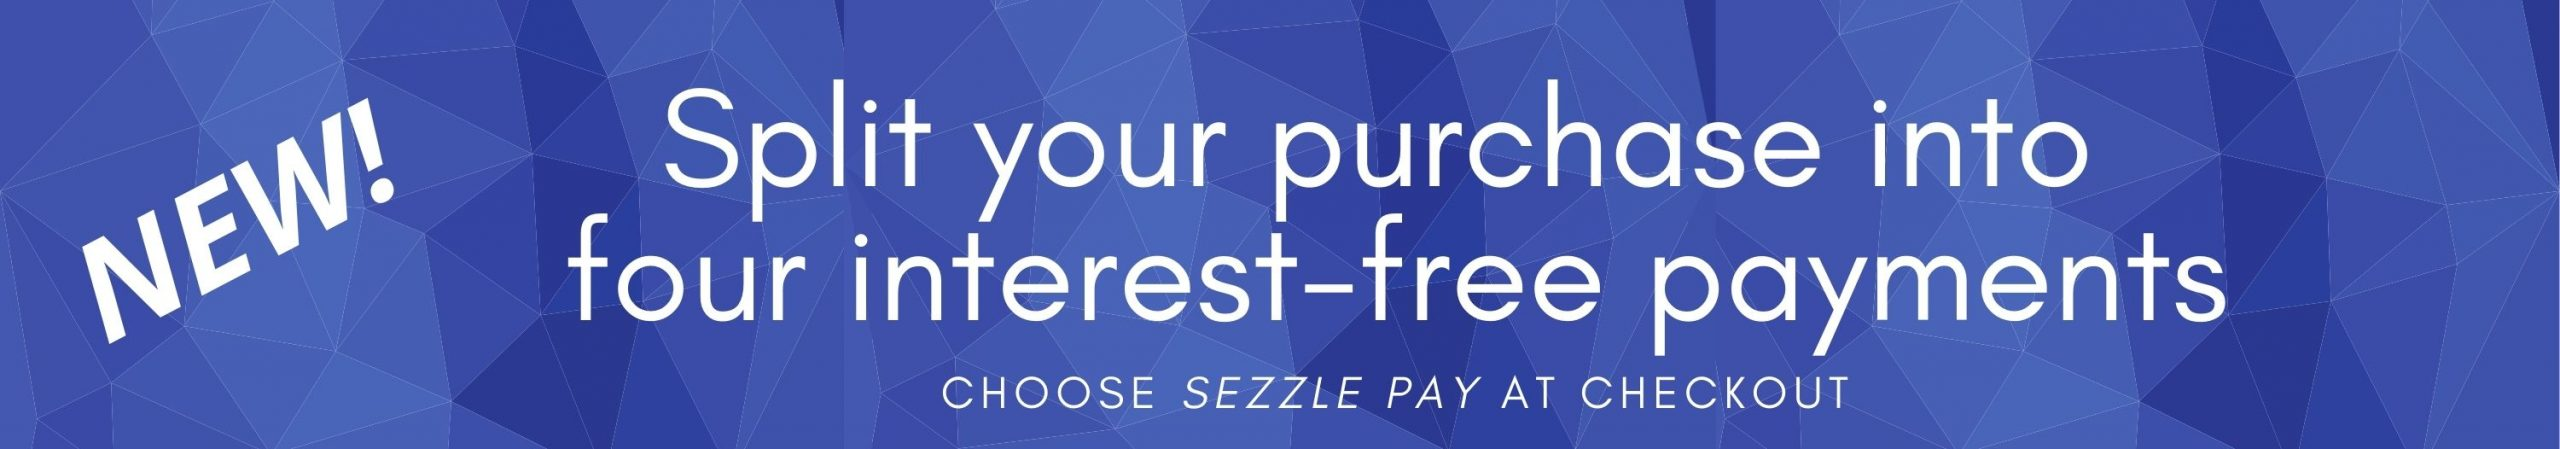 INTEREST FREE PAYMENTS